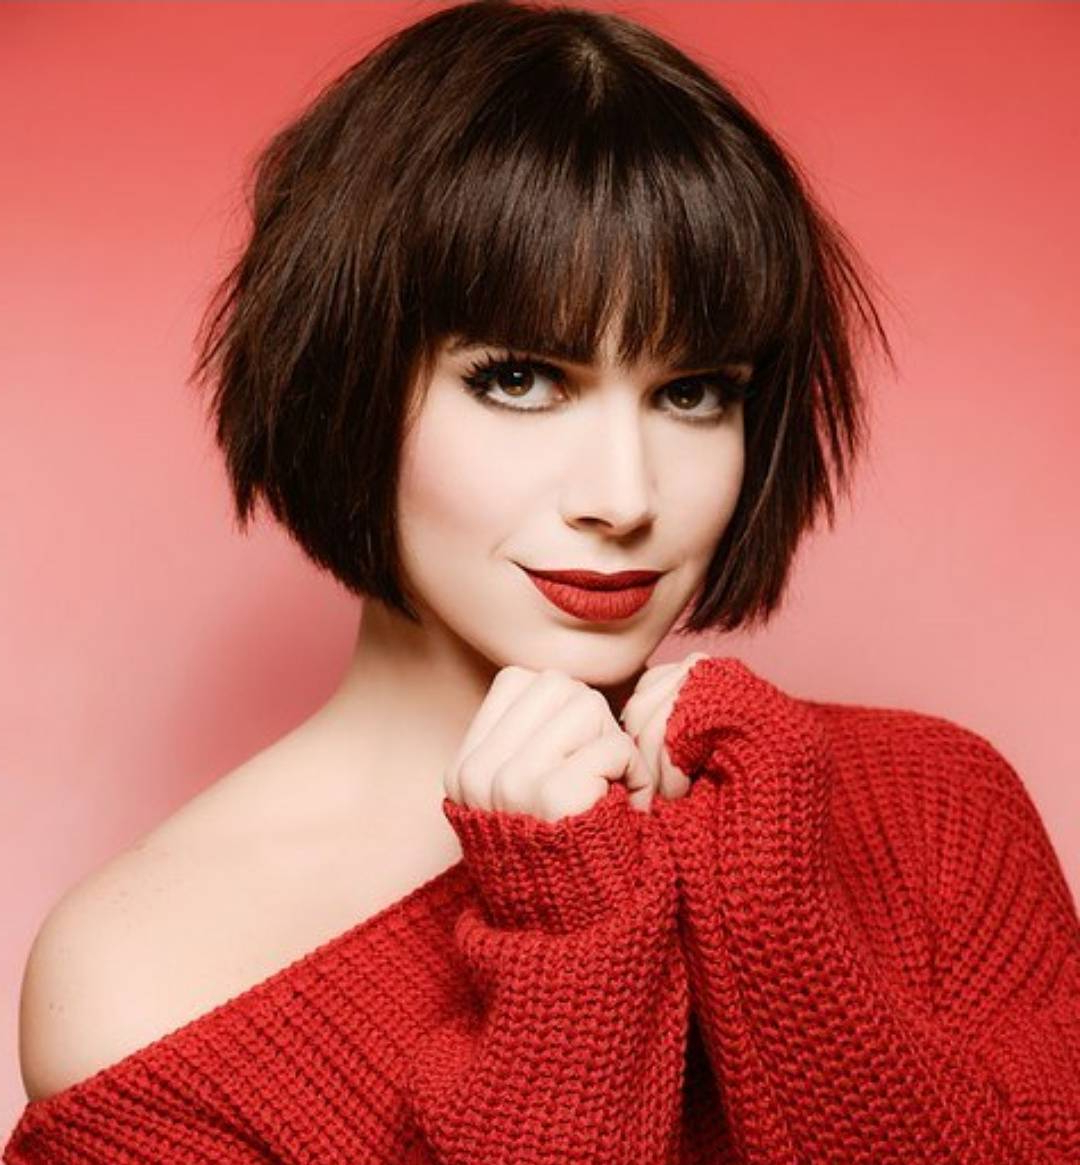 10 Chic Short Bob Haircuts That Balance Your Face Shape! Throughout Jaw Length Choppy Bob Hairstyles With Bangs (Gallery 19 of 20)